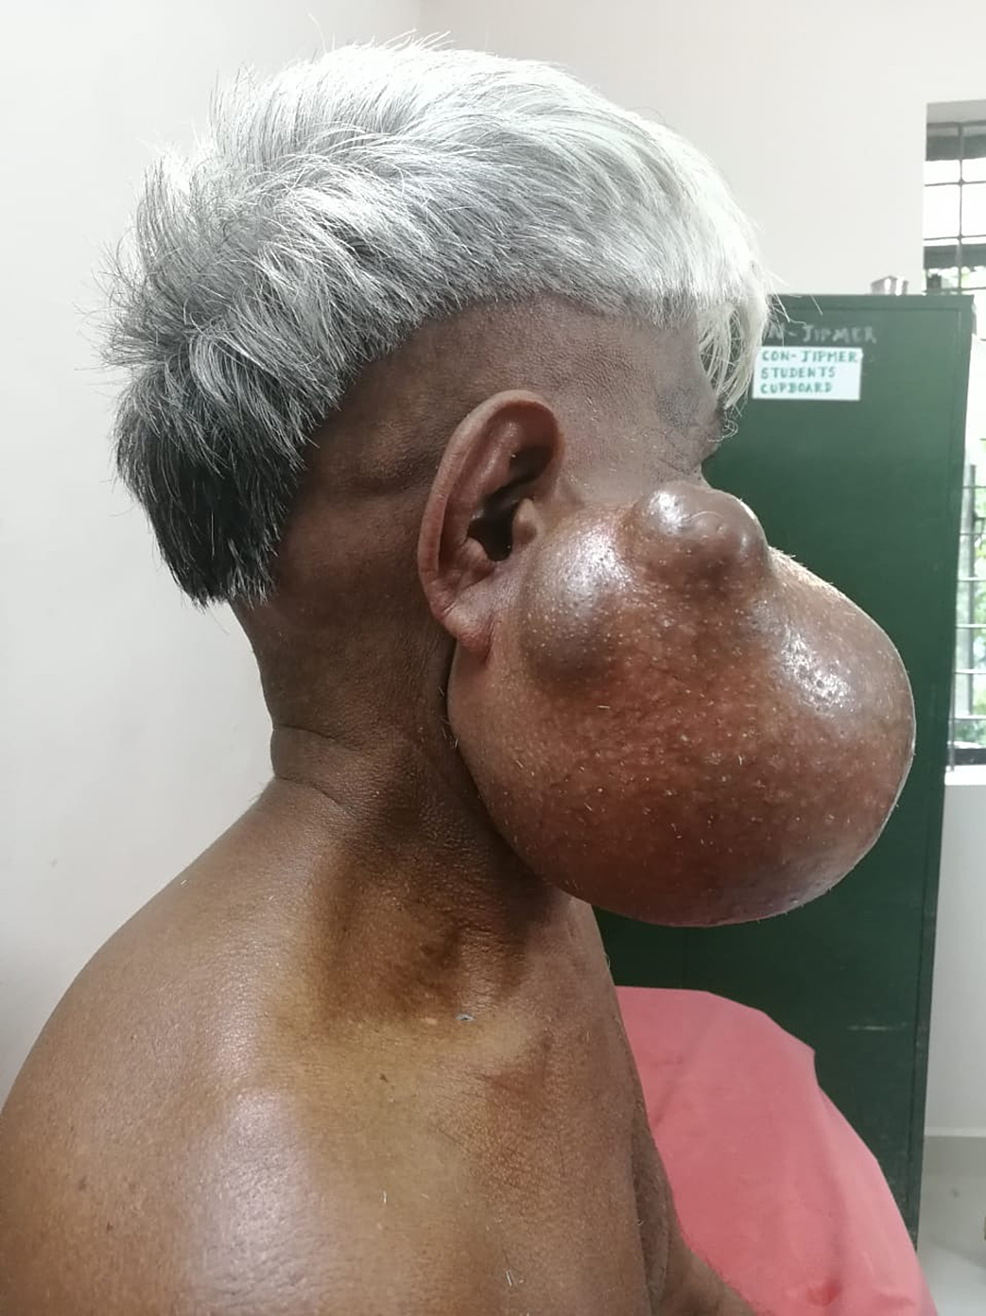 Clinical-image-of-the-patient-(Case-1)-showing-a-large-right-sided-parotid-swelling